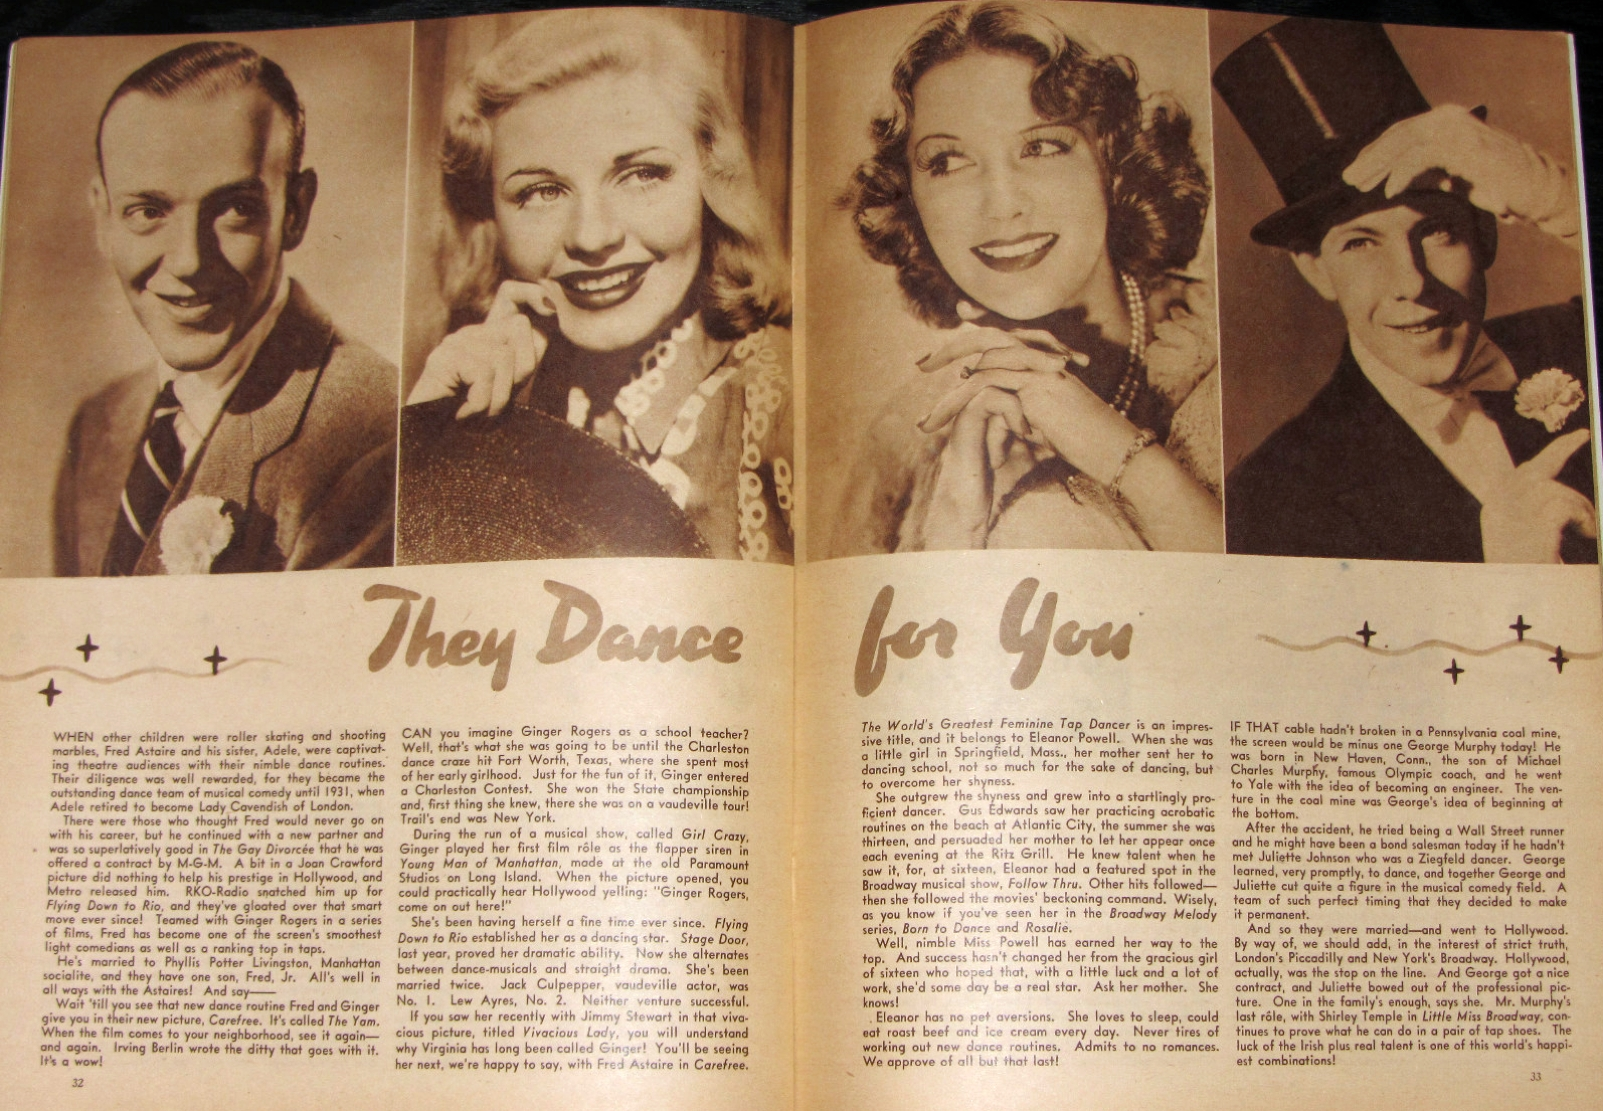 carole lombard screen album summer 1938 they dance for you large